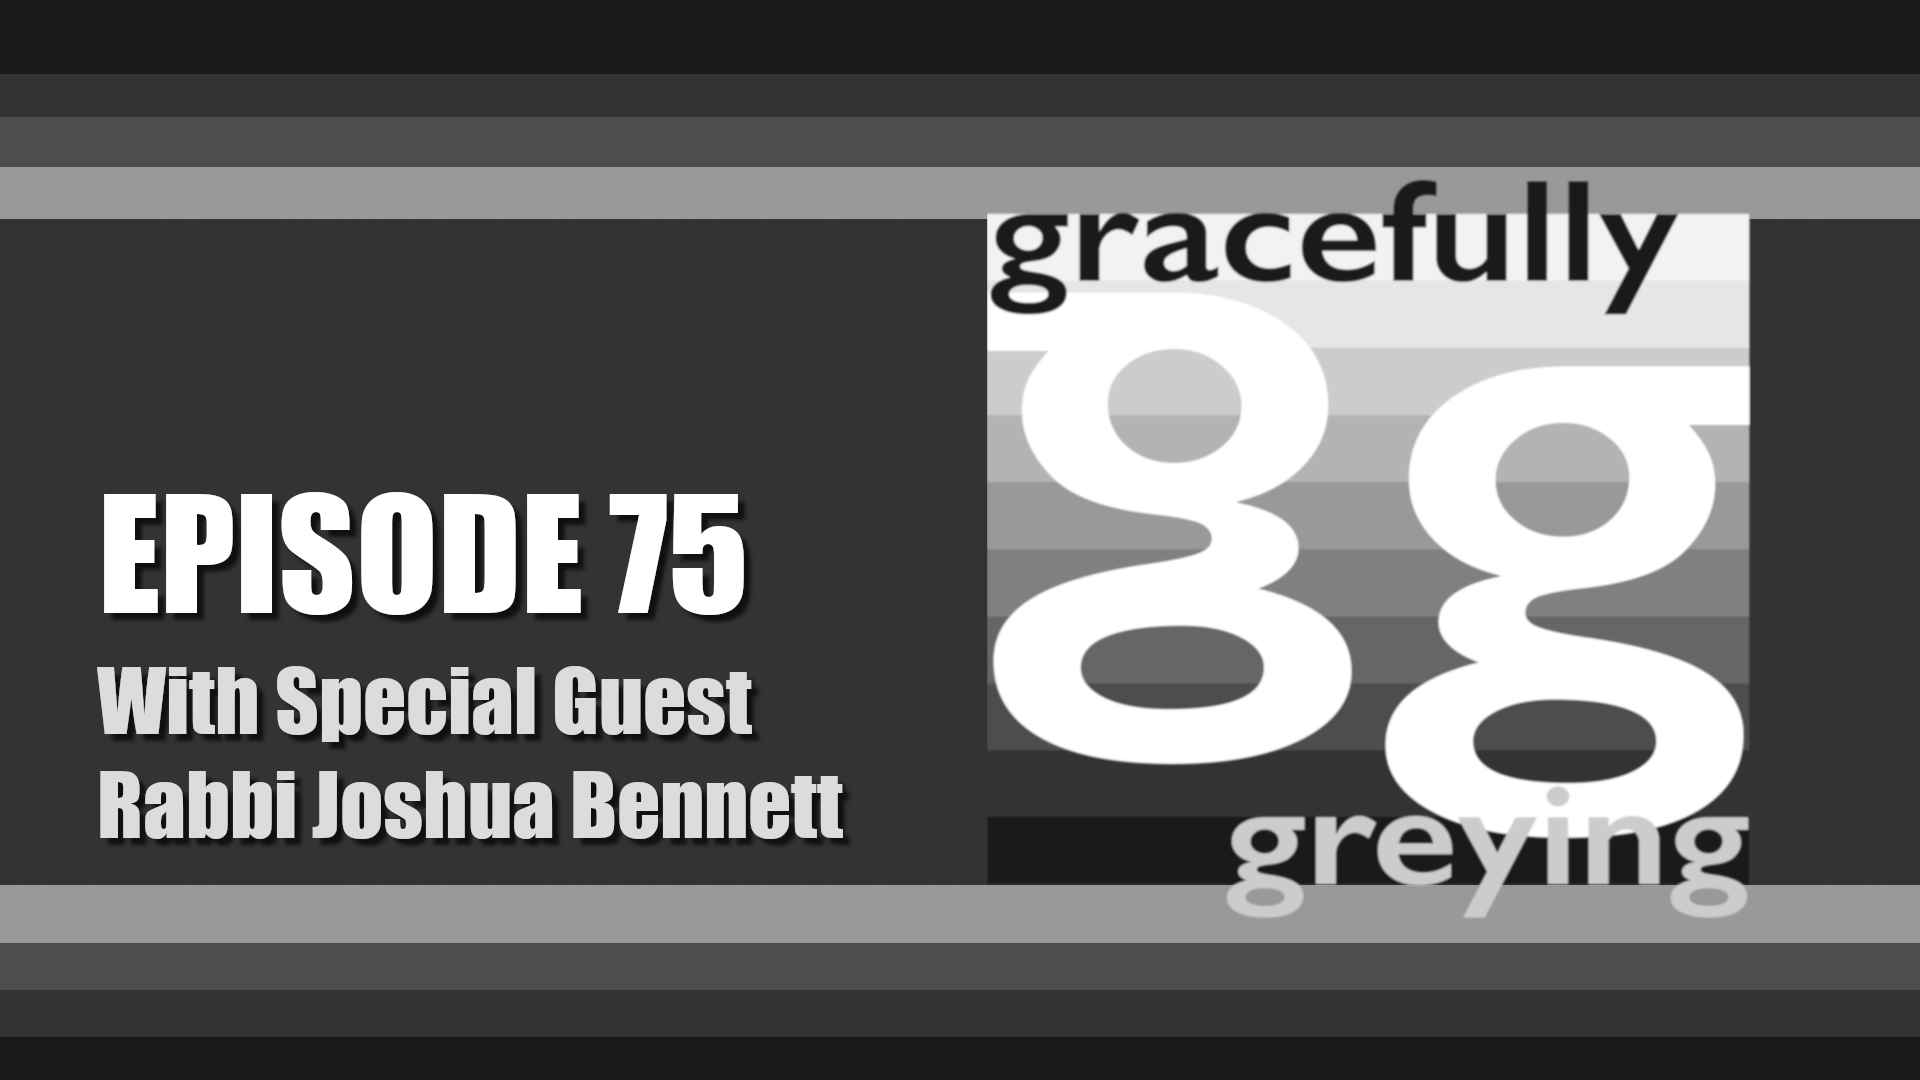 Gracefully Greying - Episode 75